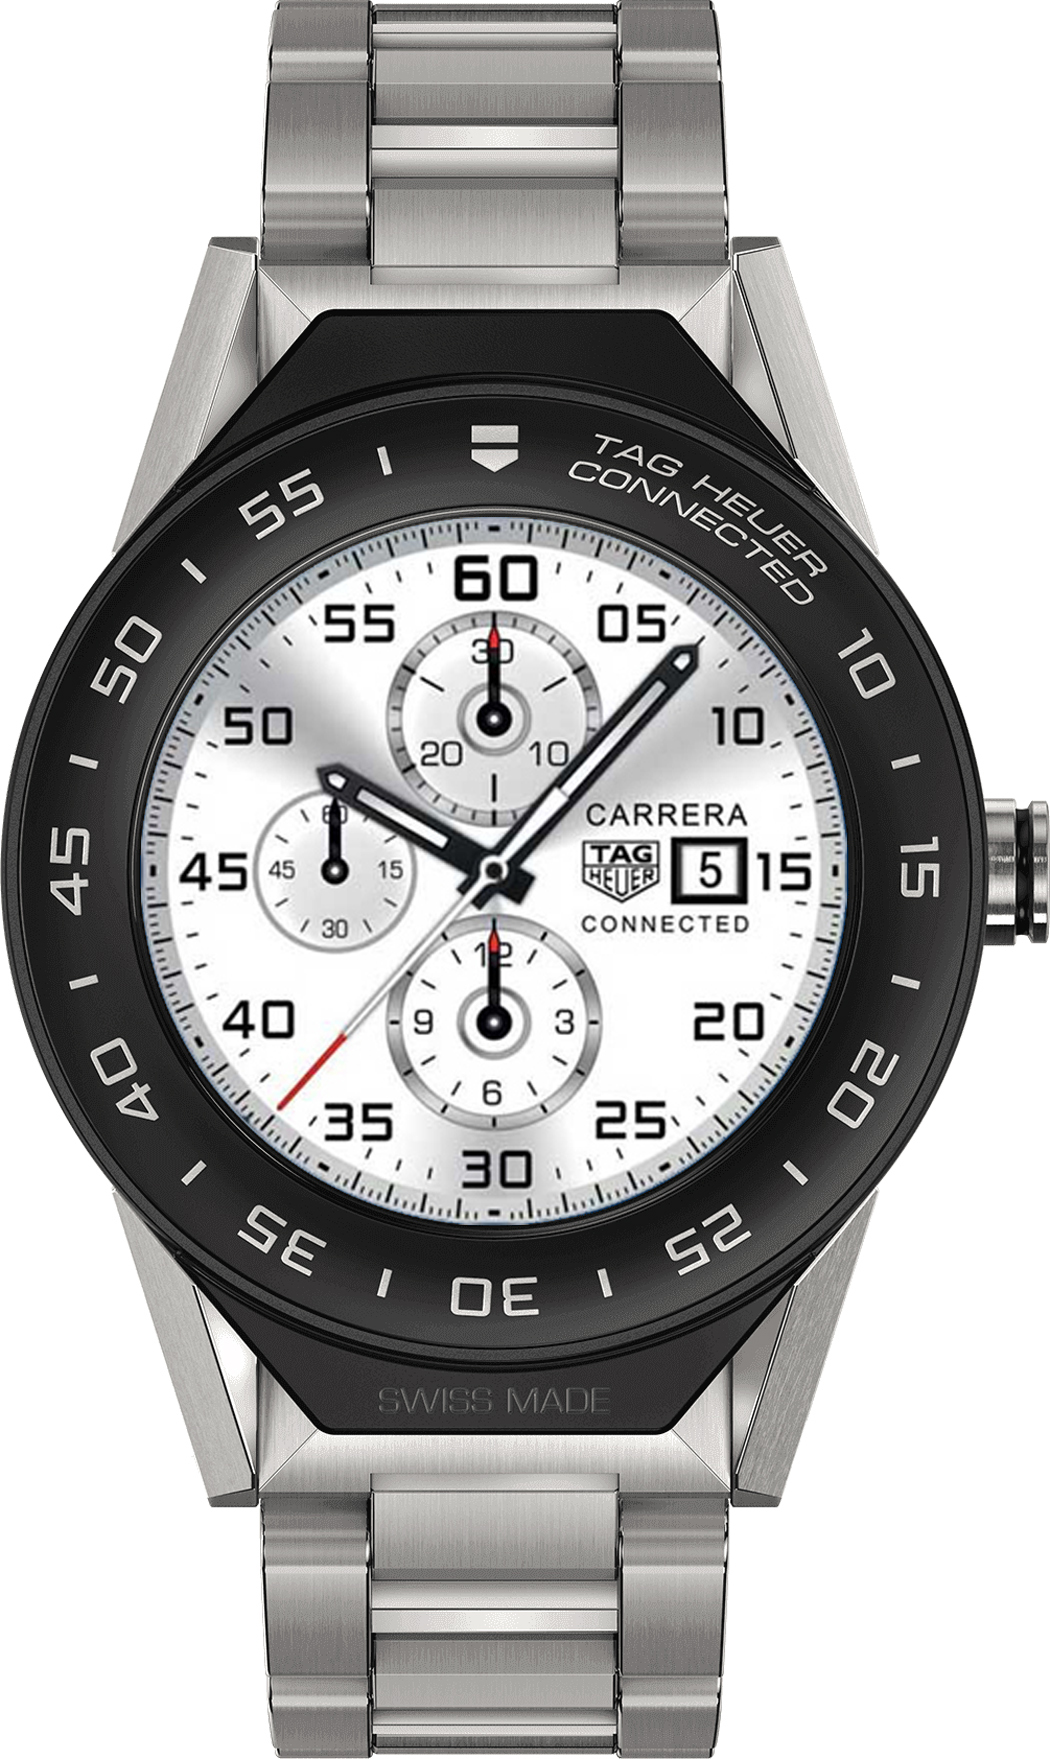 Tag heuer connected modular sale for The tag heuer connected modular